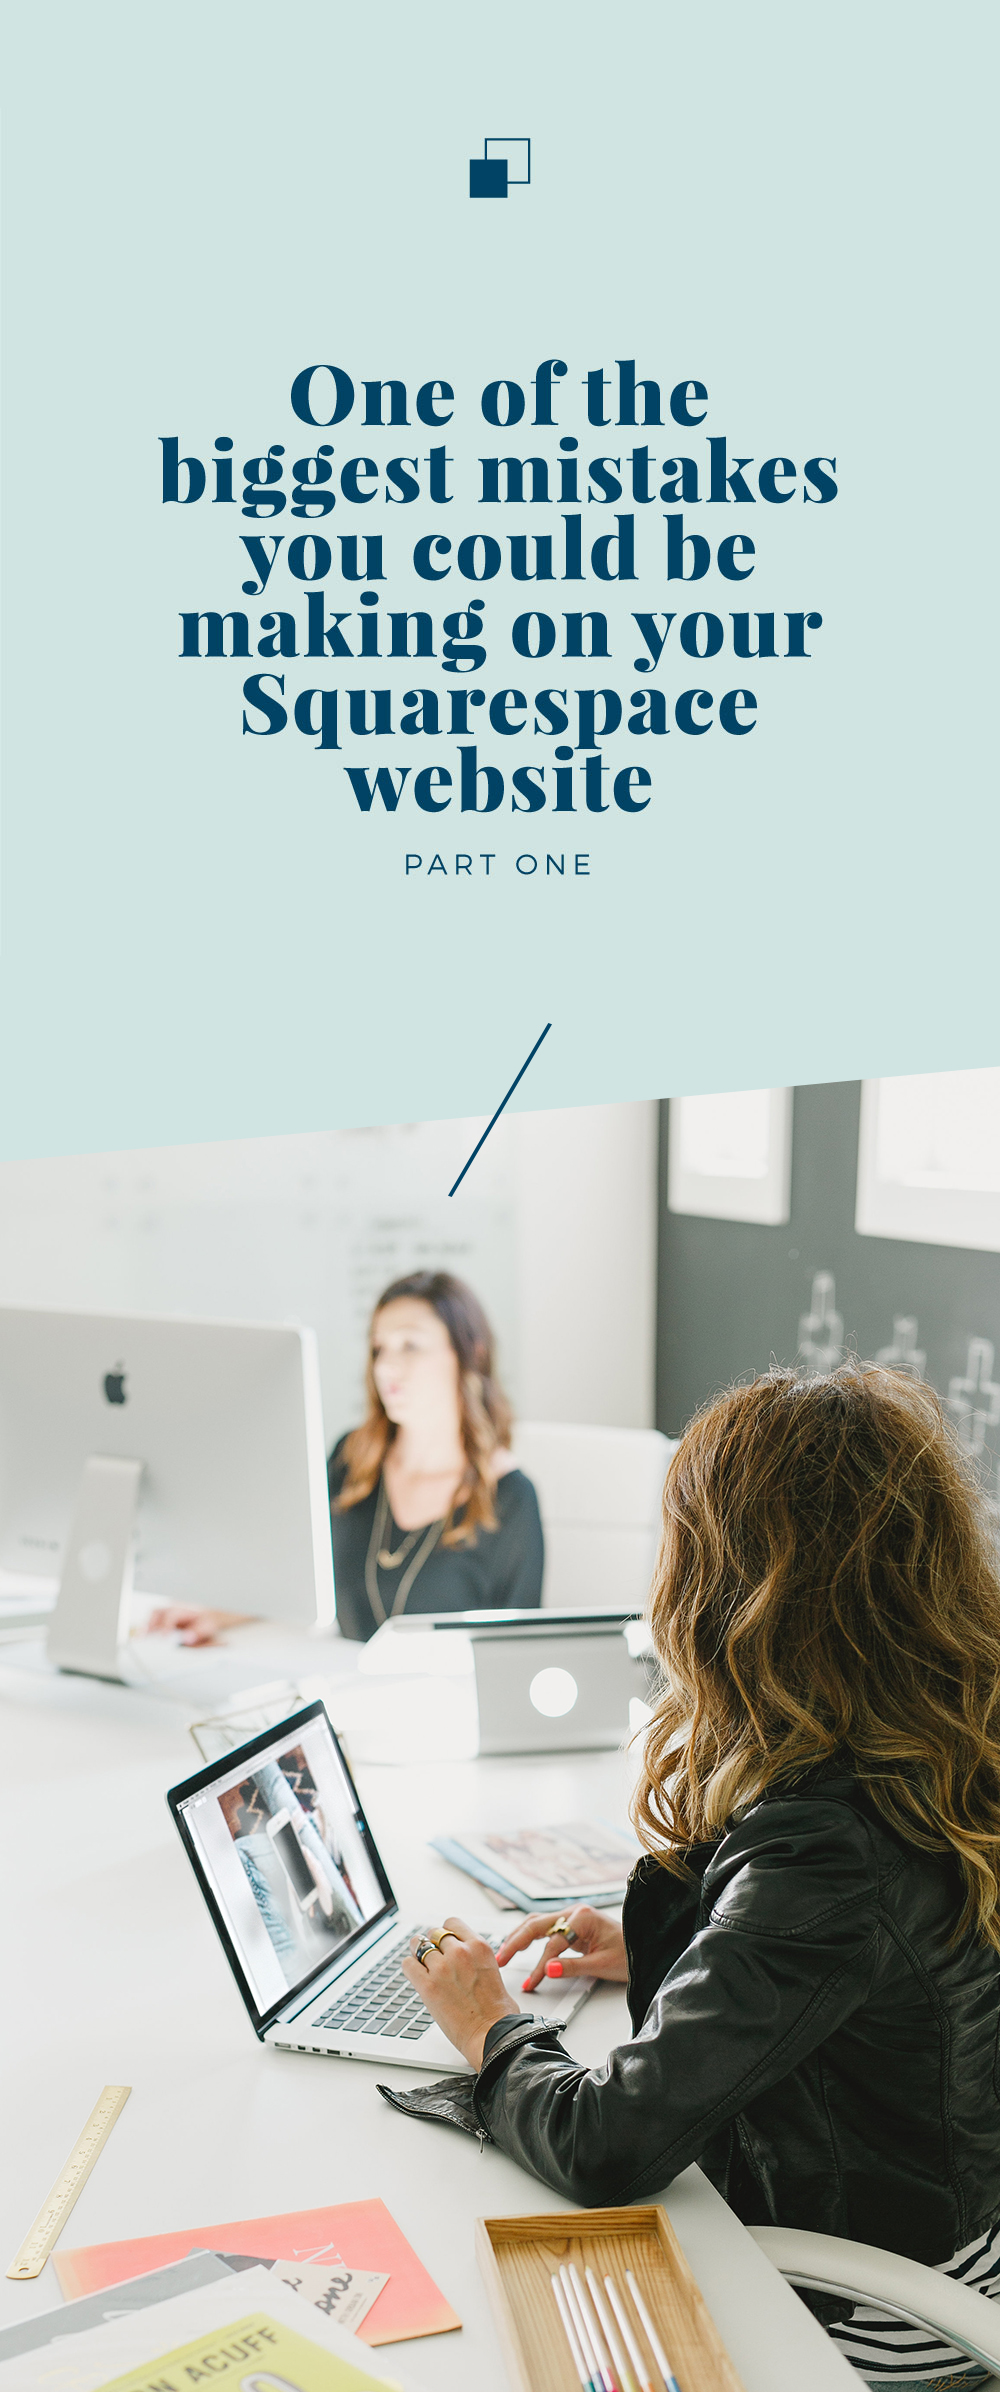 squarespace website tips